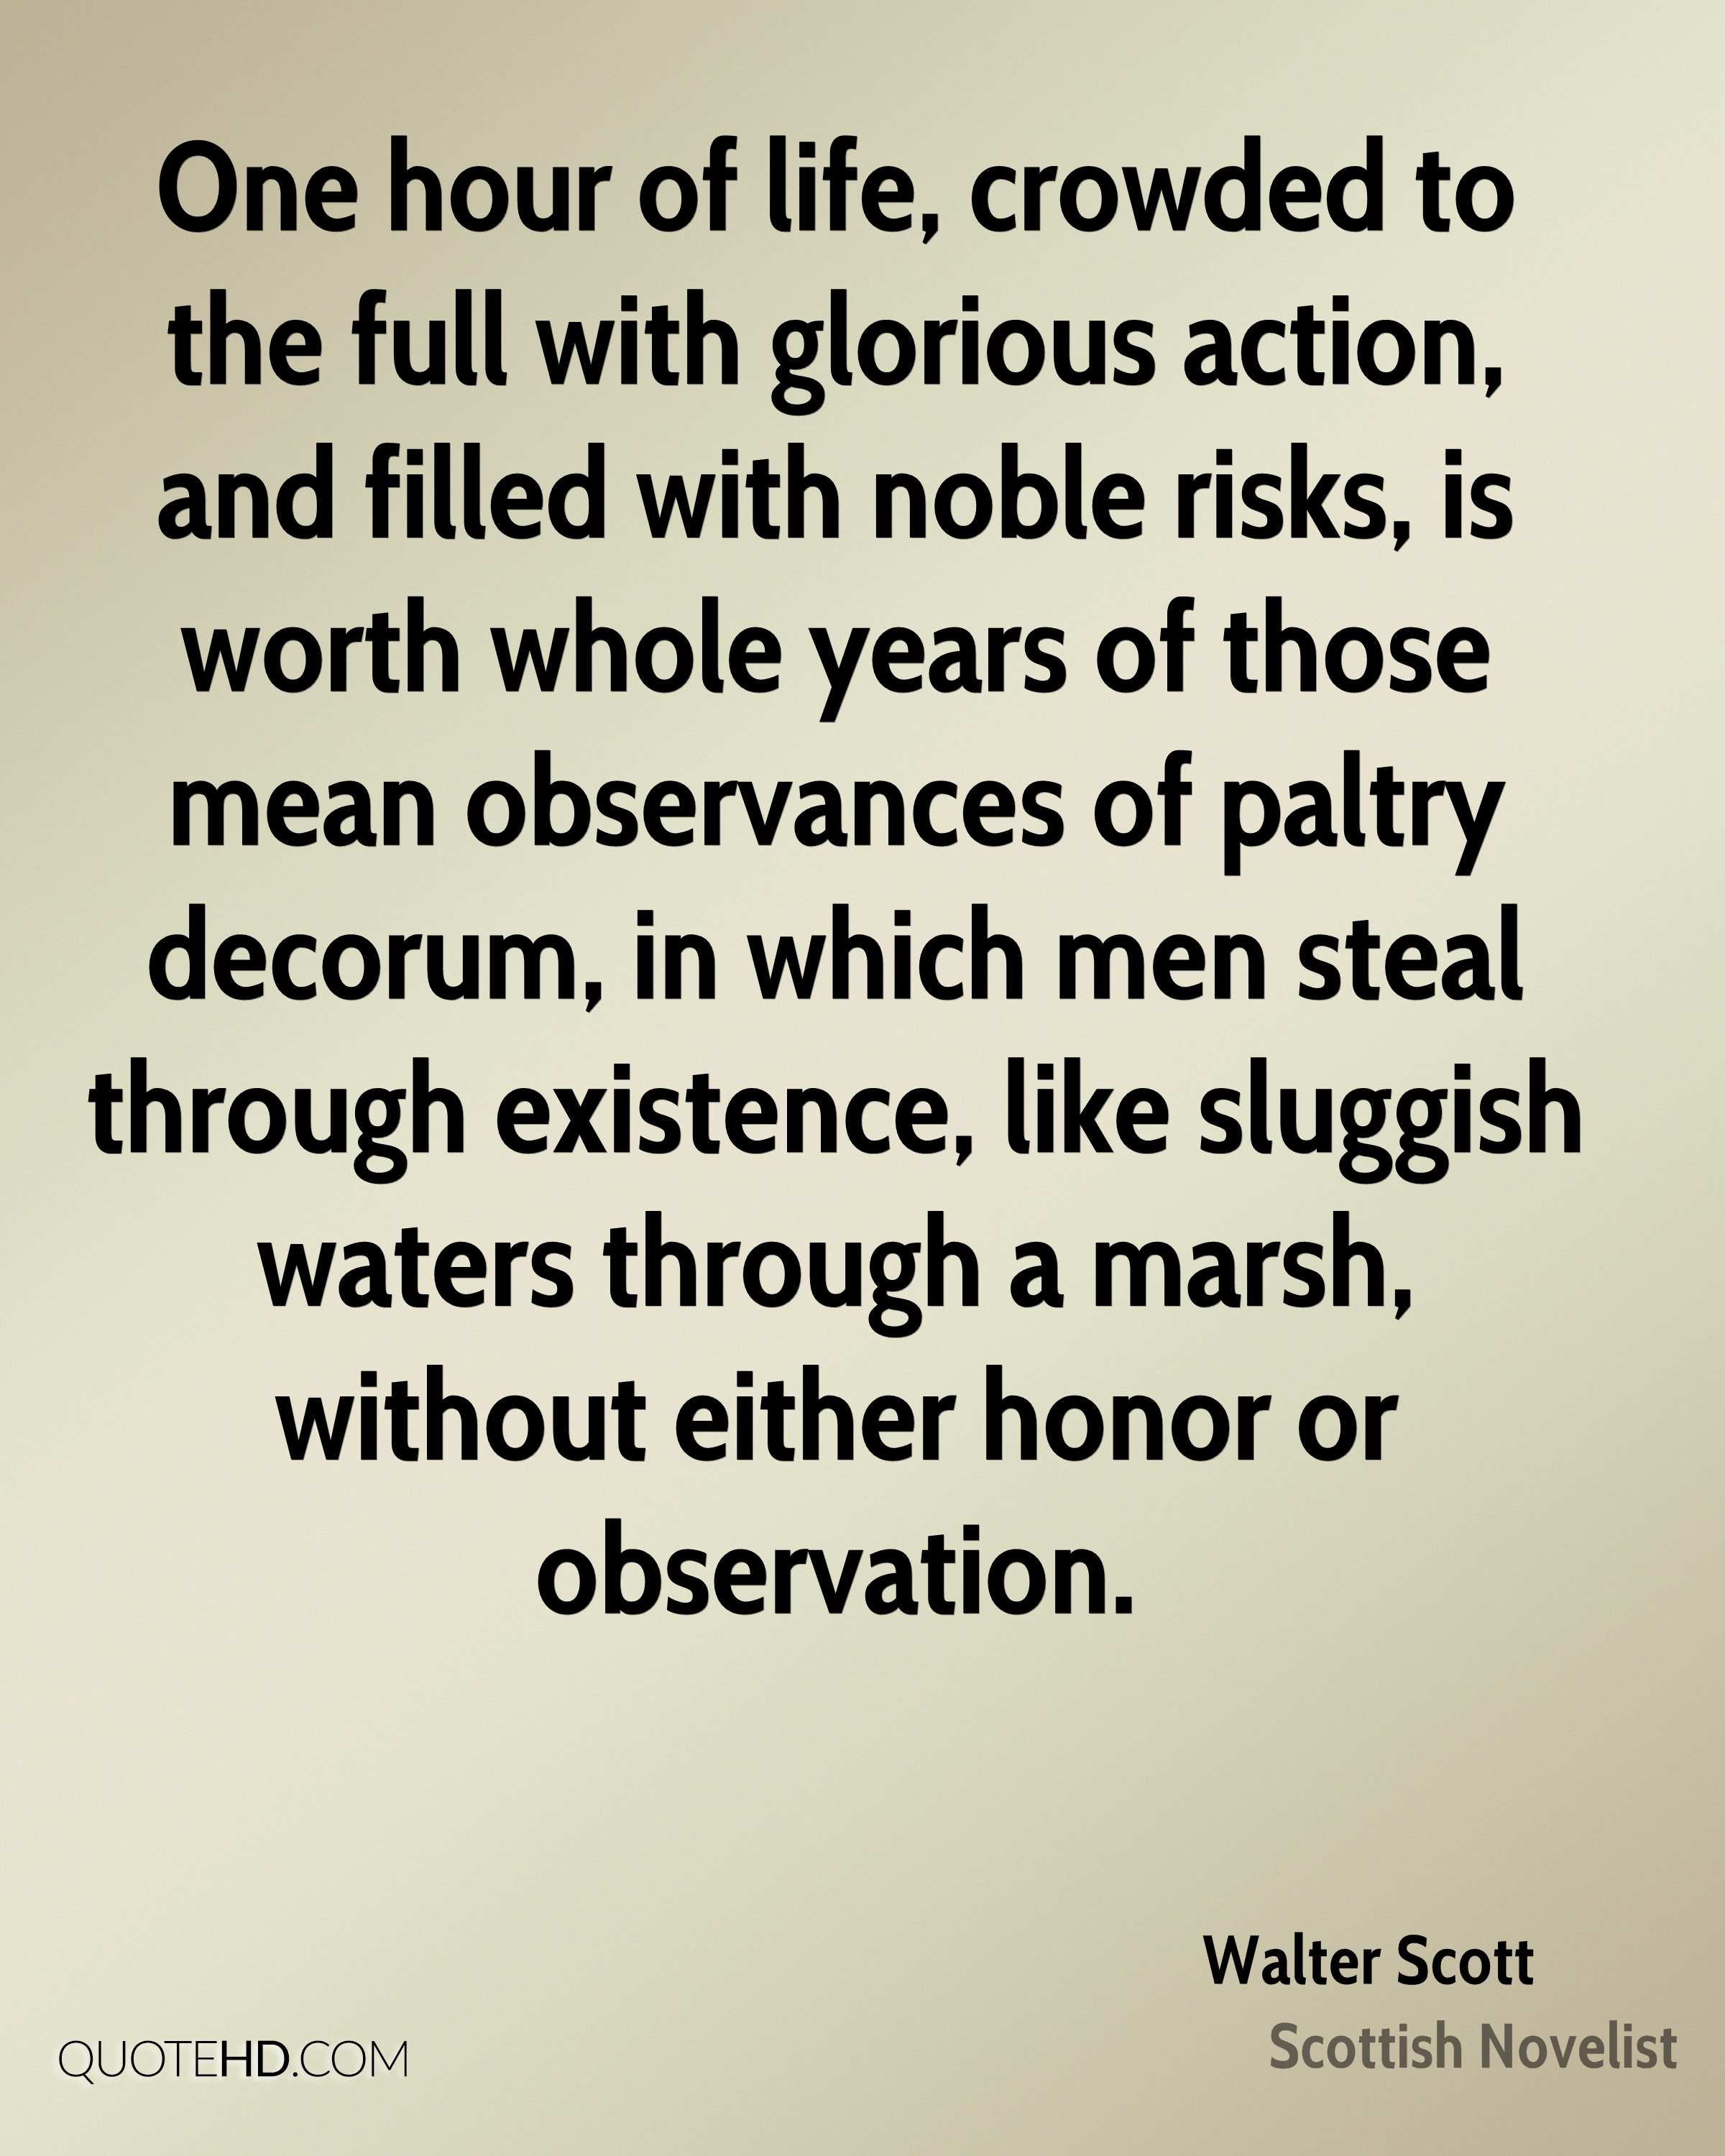 One hour of life, crowded to the full with glorious action, and filled with noble risks, is worth whole years of those mean observances of paltry decorum, in which men steal through existence, like sluggish waters through a marsh, without either honor or observation.